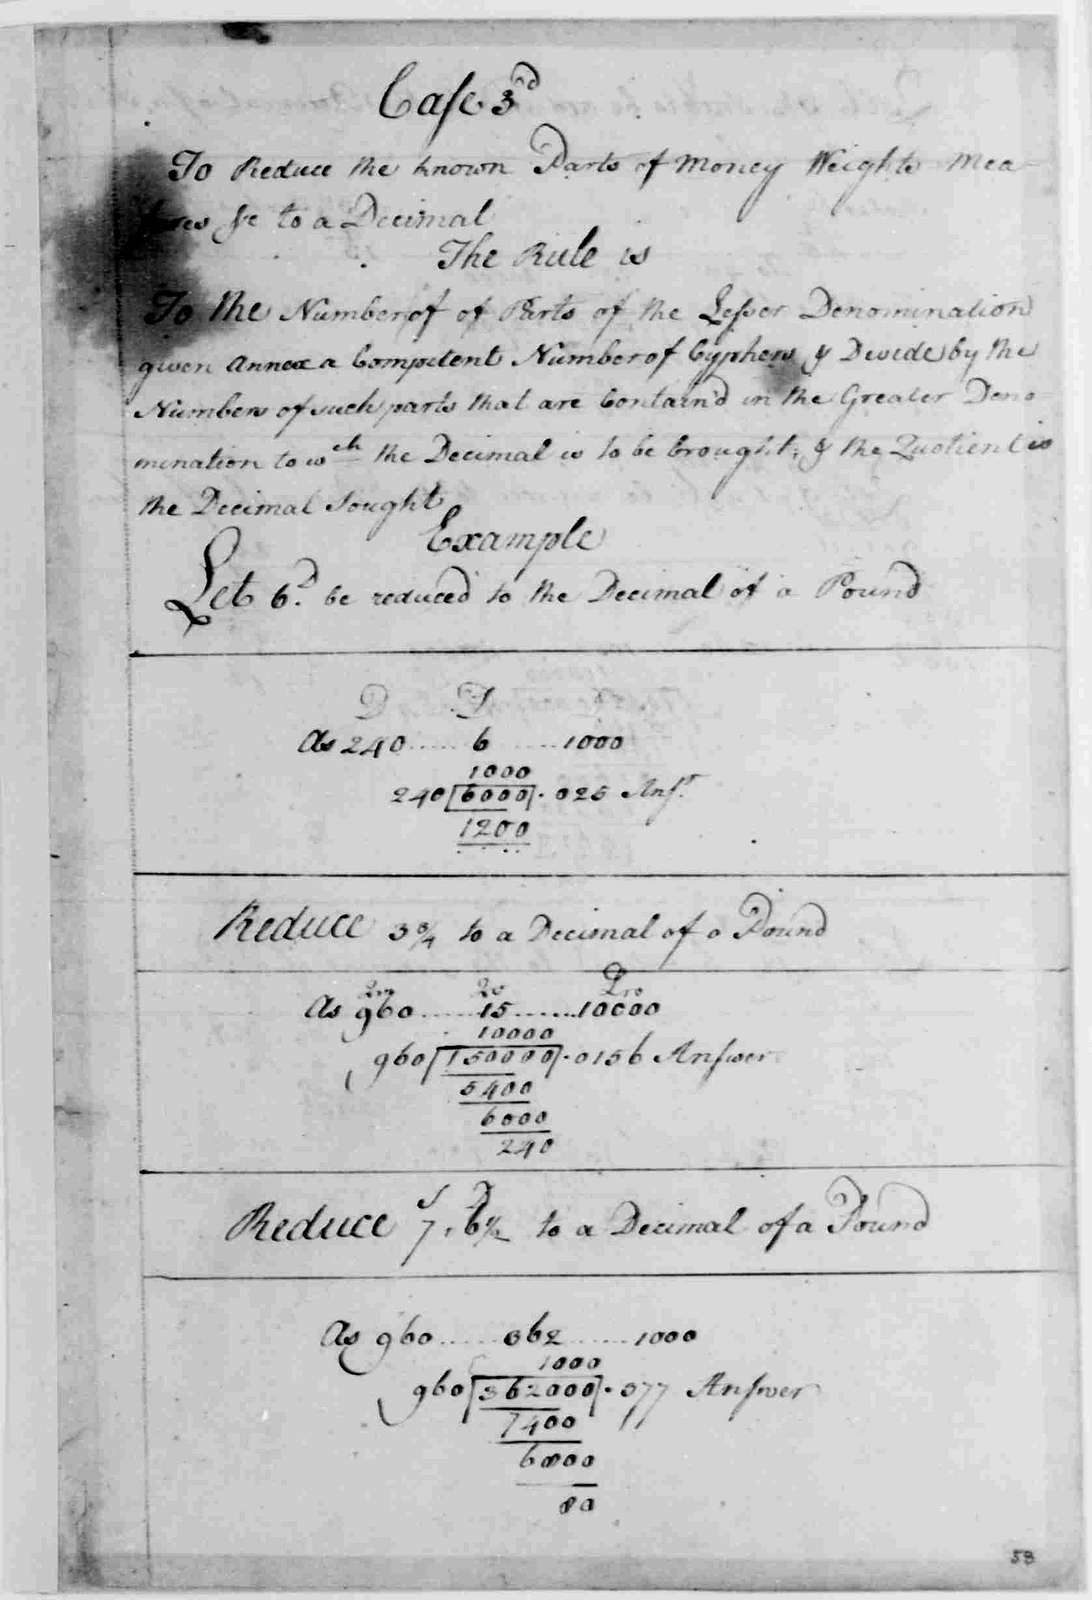 George Washington Papers, Series 1, Exercise Books, Diaries, and Surveys 1745-99, Subseries 1A, Exercise Books 1745-1747: School Copy Book, Volume 1, 1745